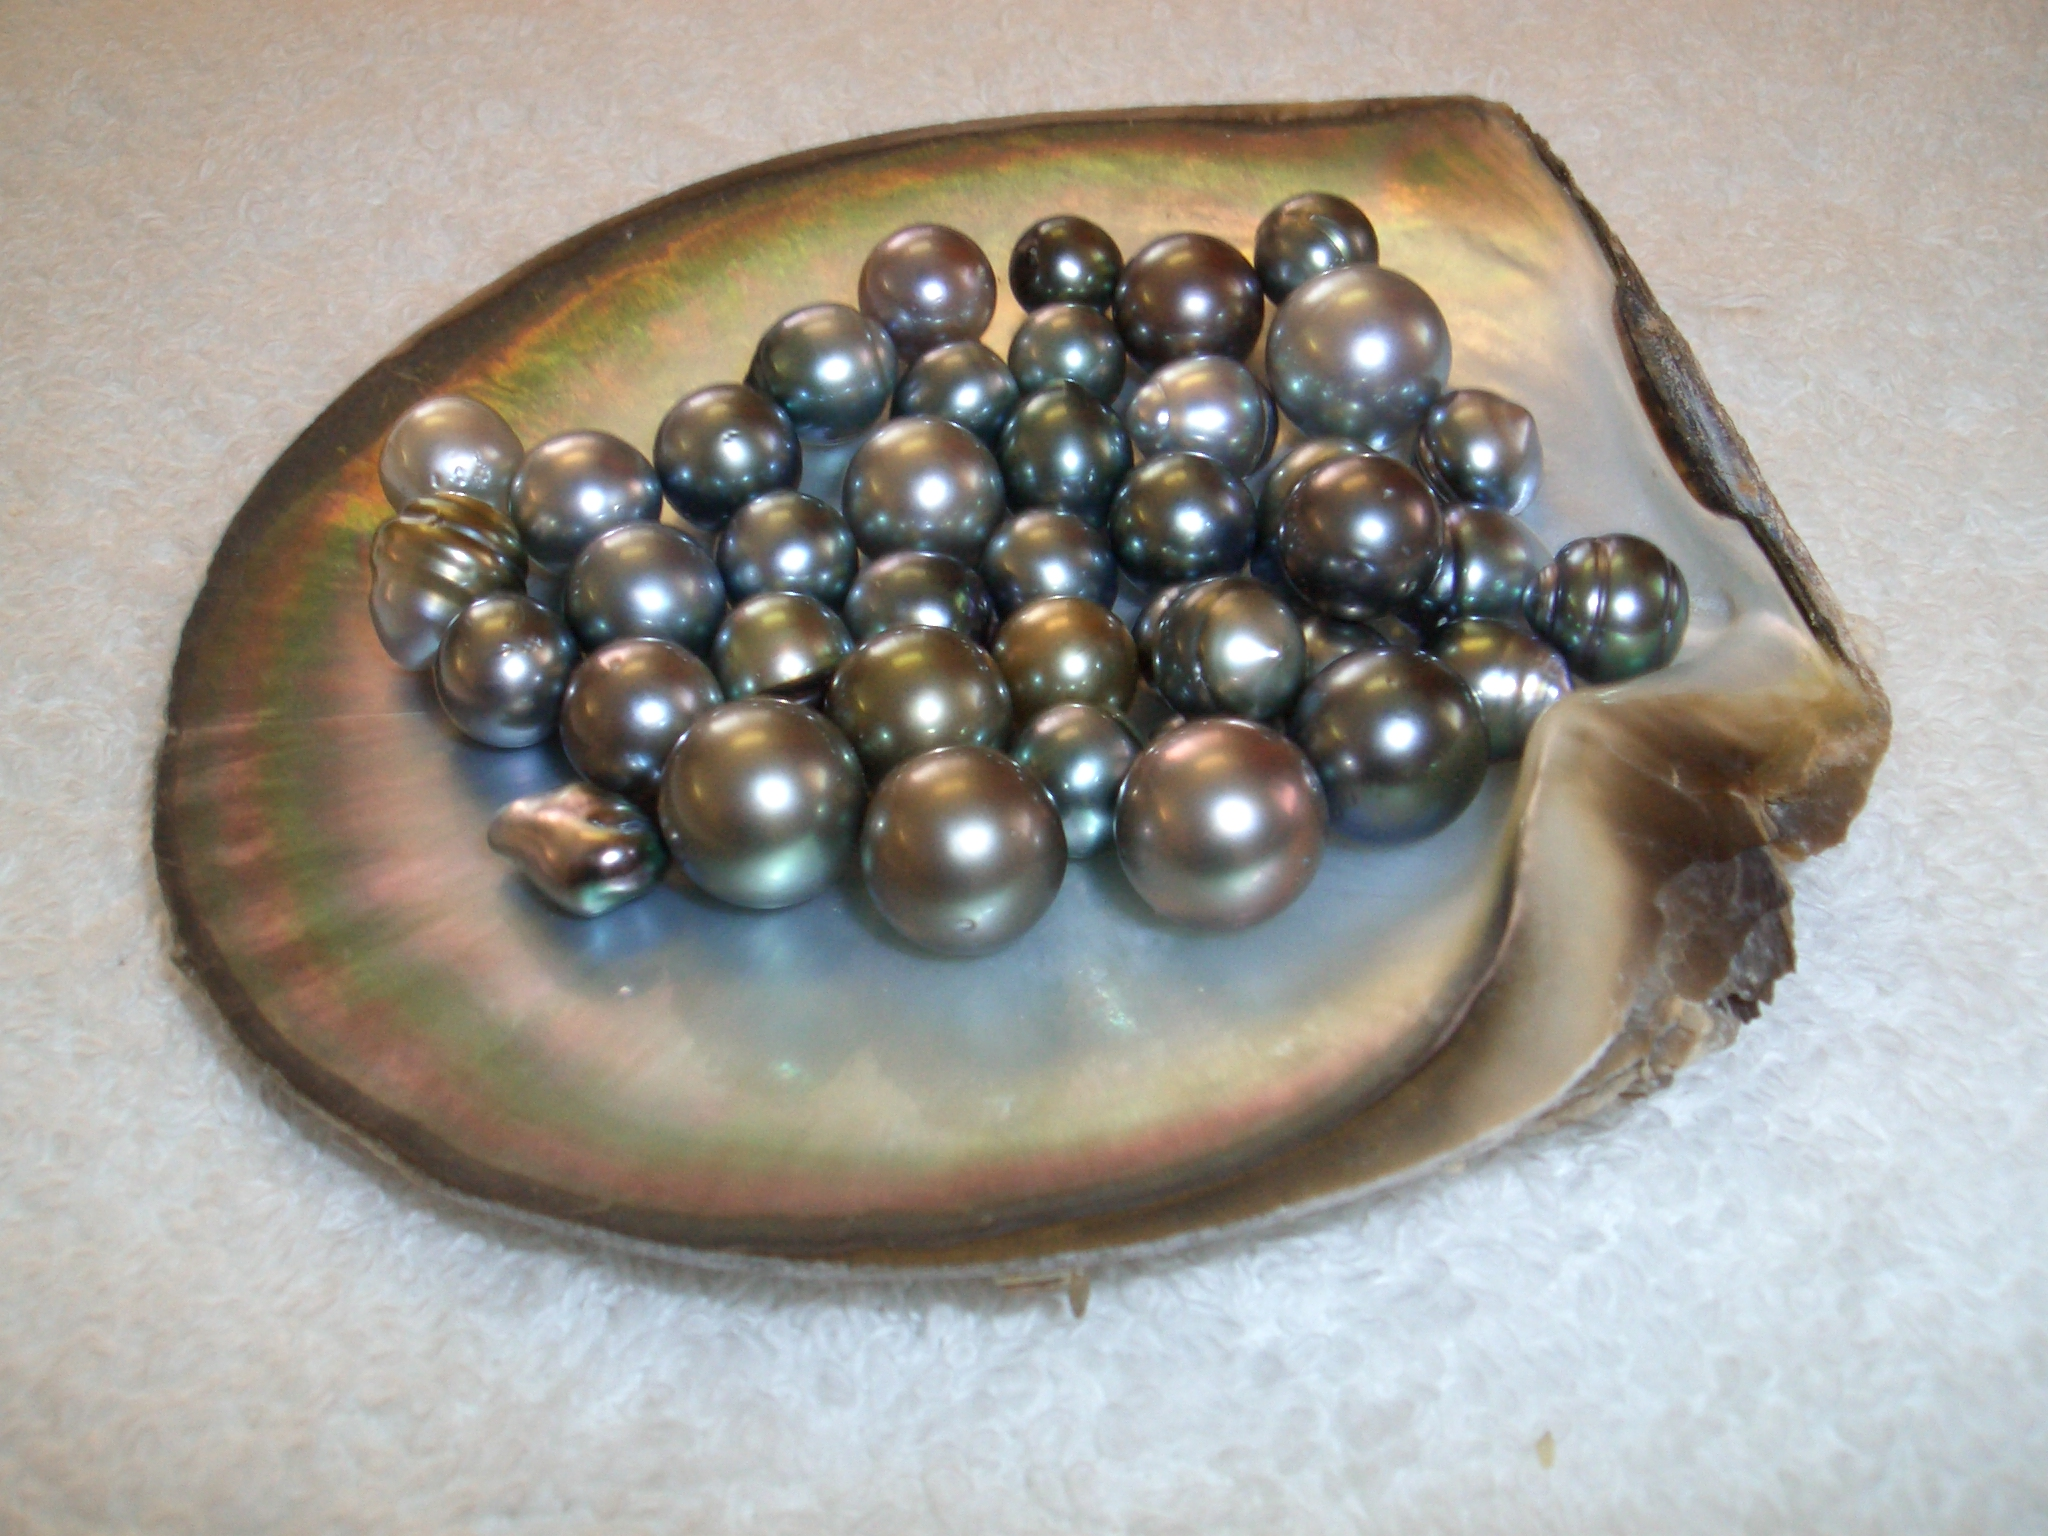 selection black holds photo of fiji stock a raw lip pearls oyster hands